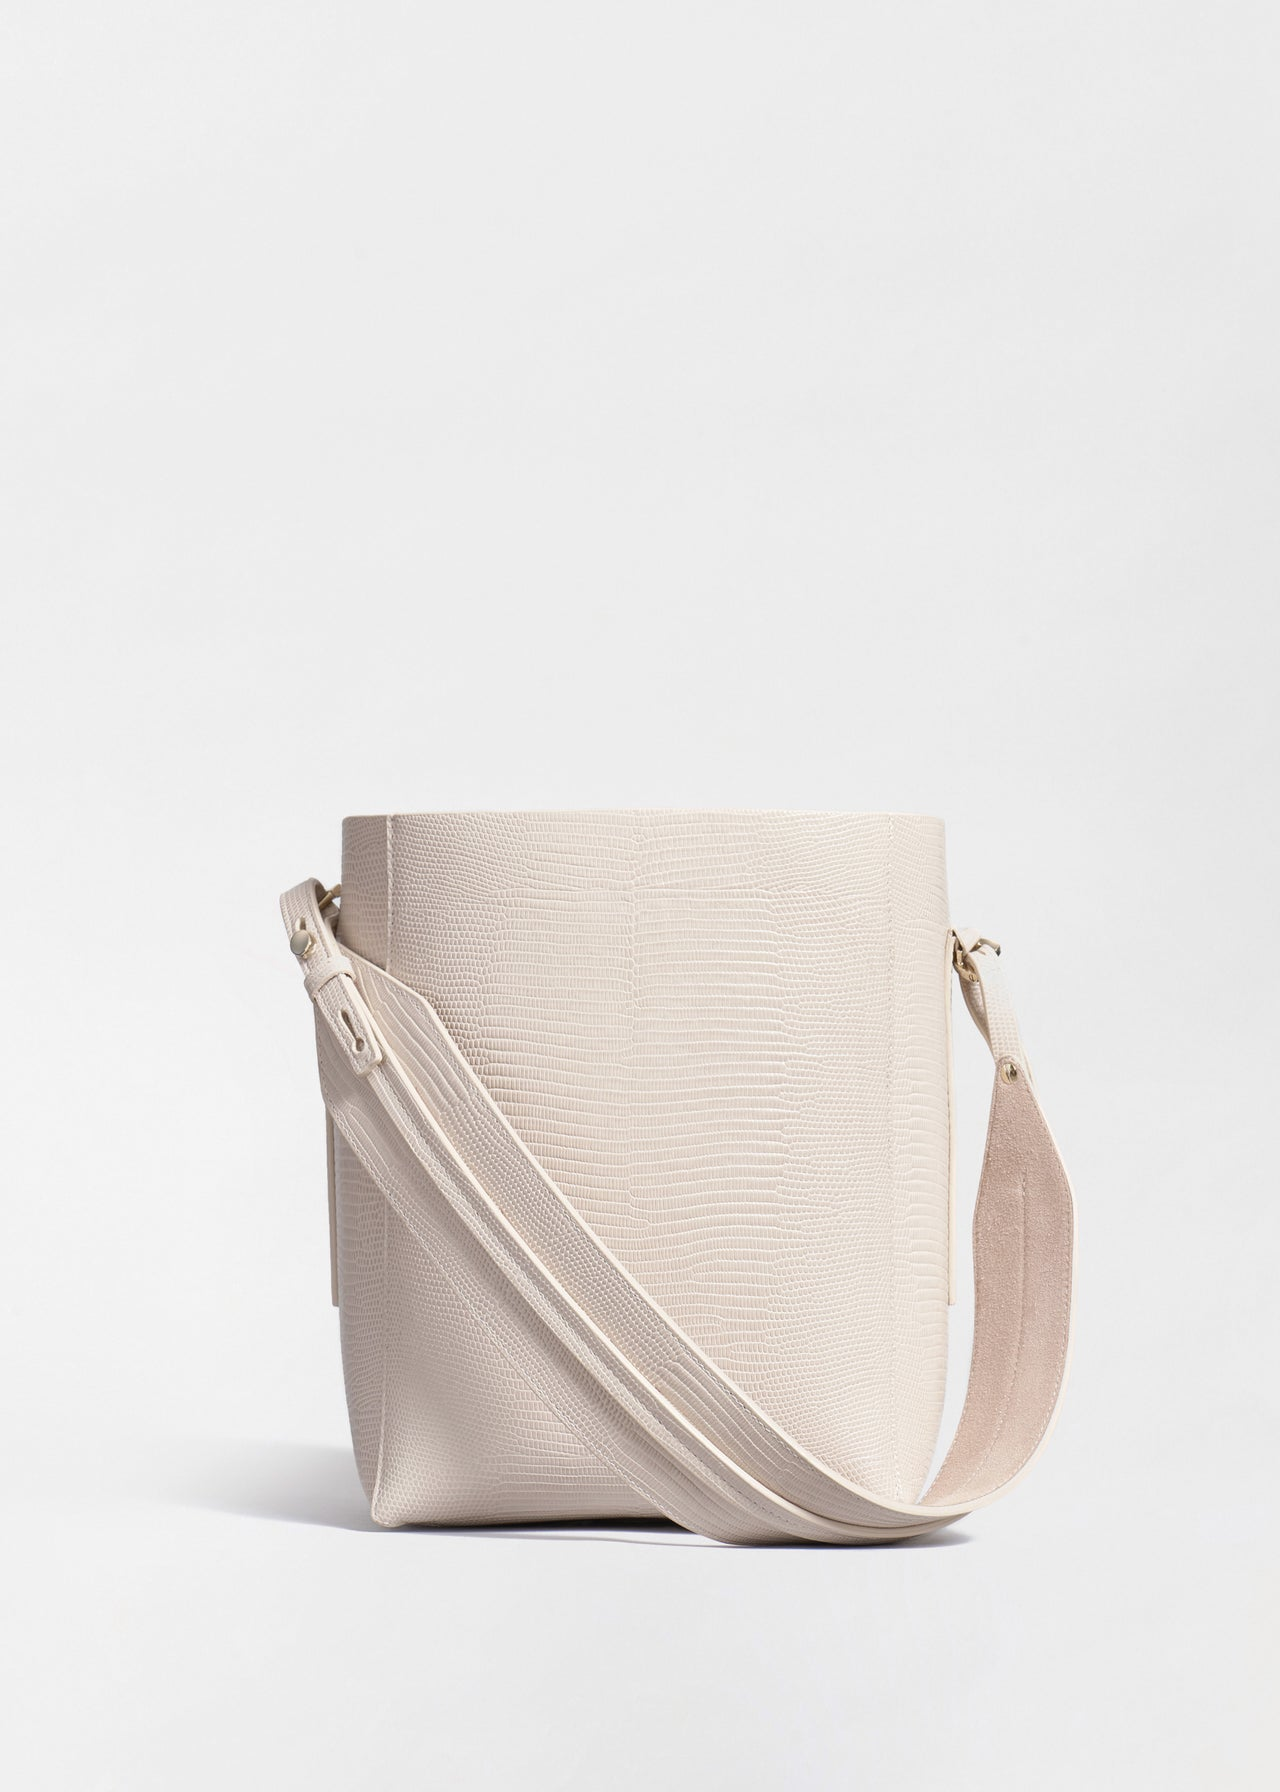 Small Bucket Bag in Embossed Leather - Sand